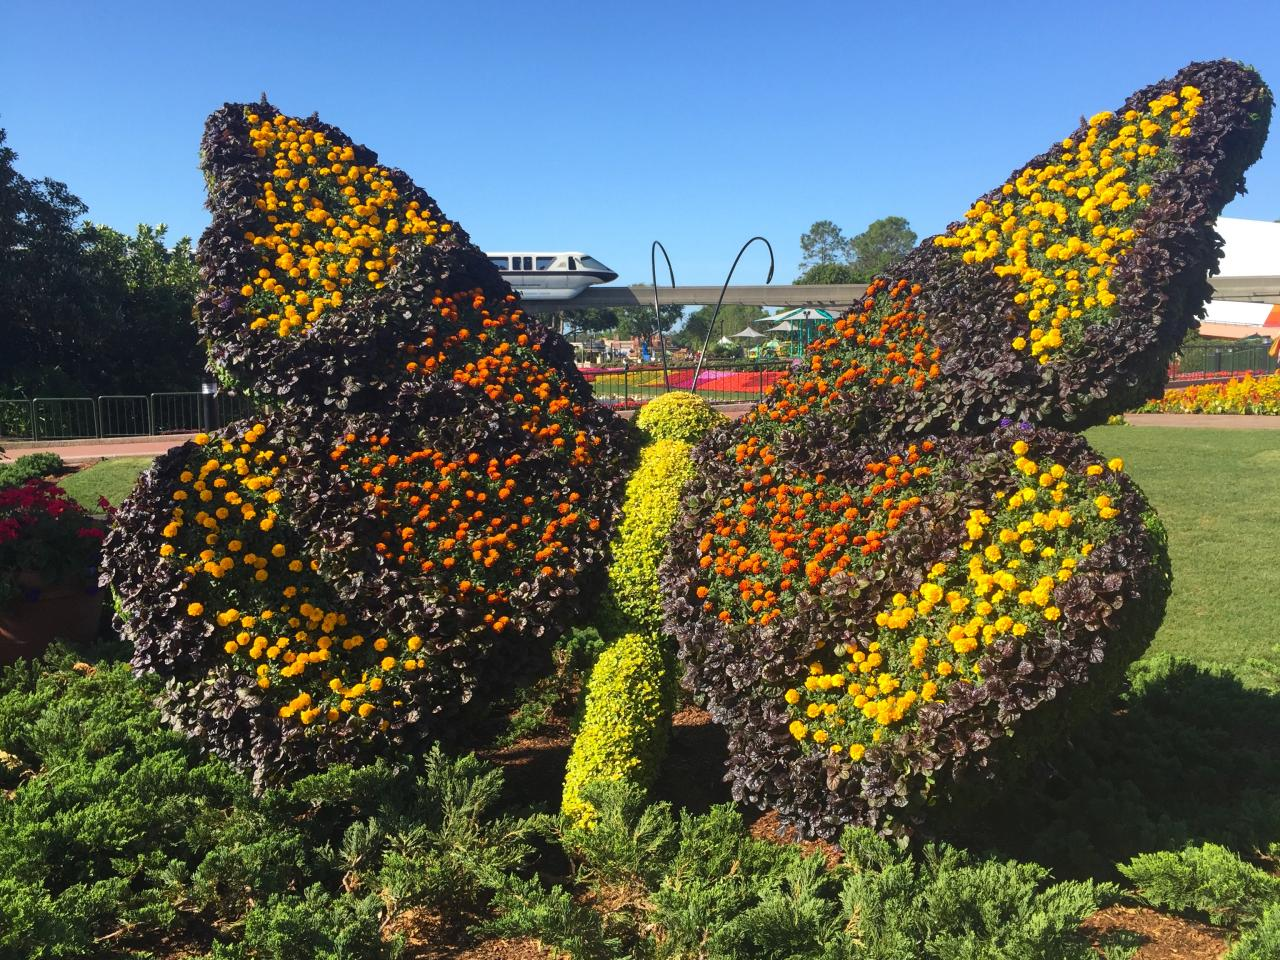 8 Sights From the Epcot International Flower and Garden Show 2016 ...